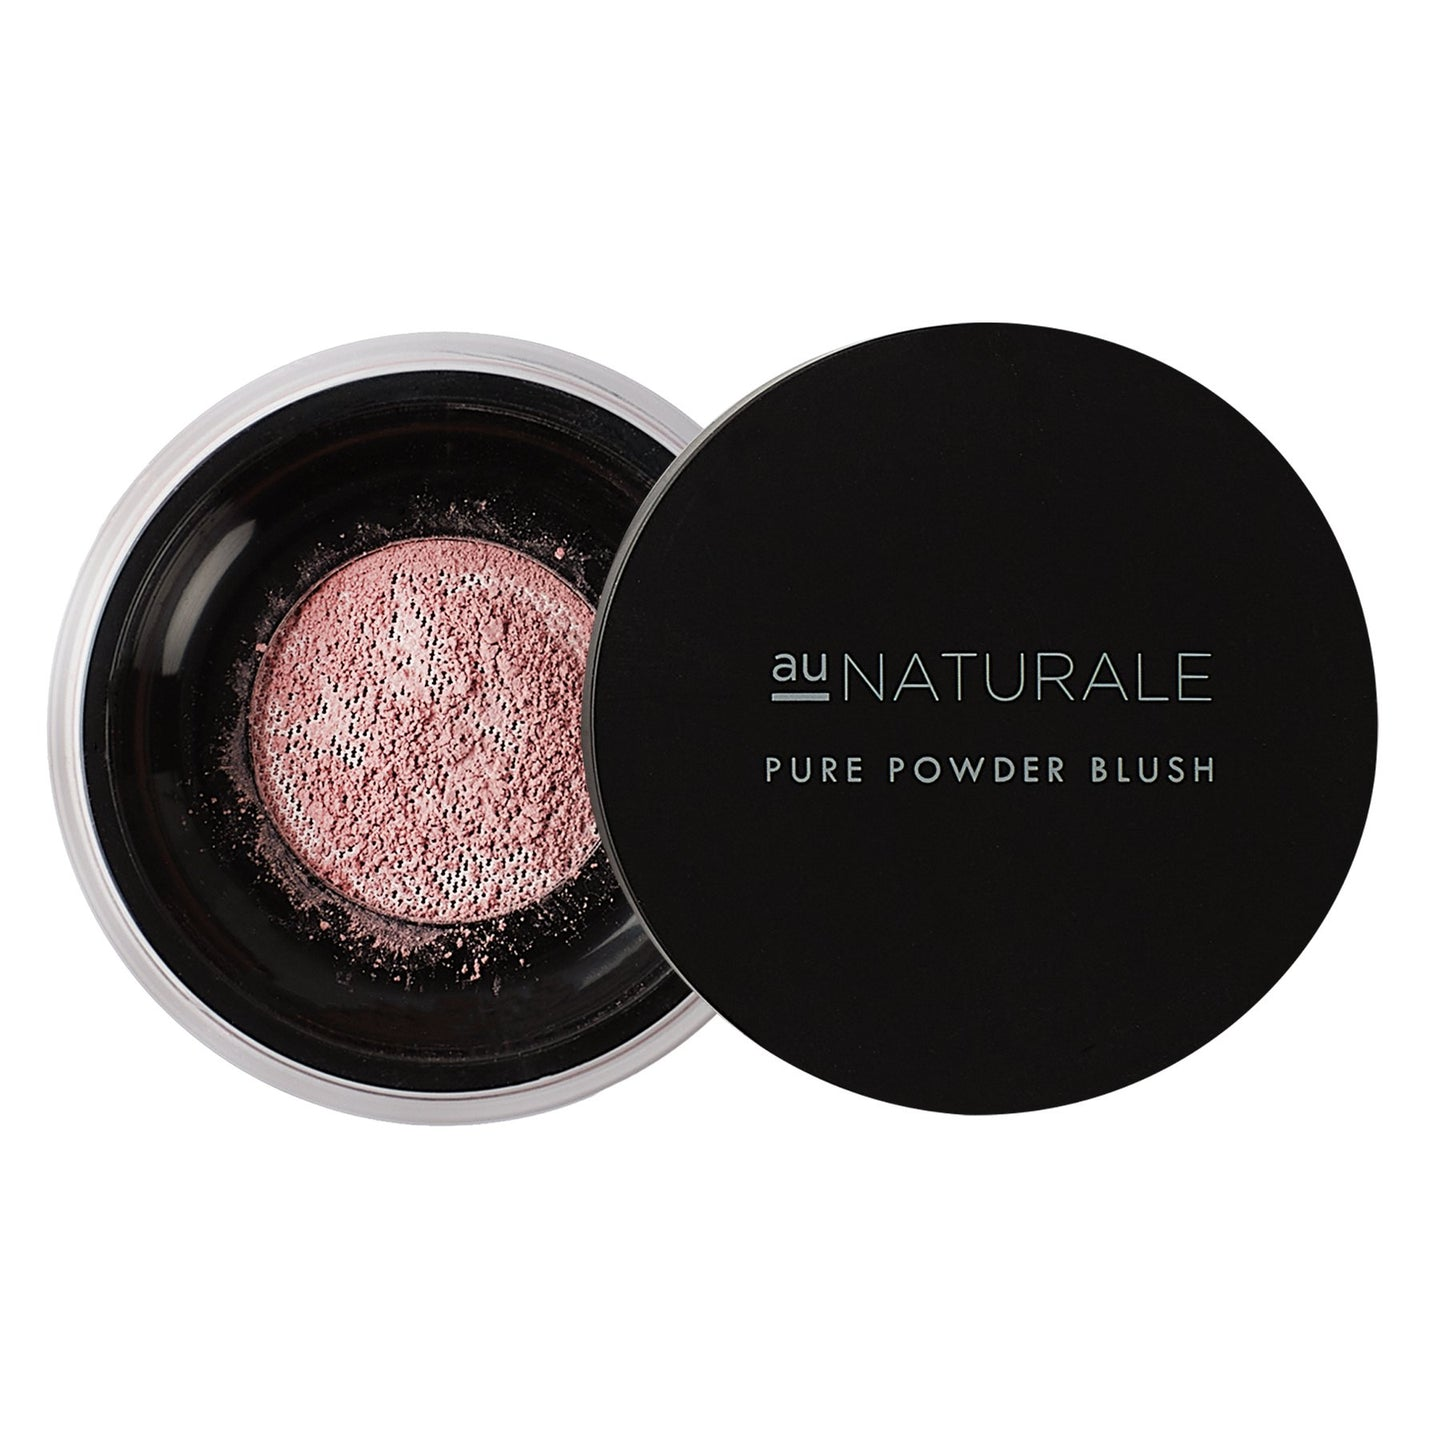 Shop Pure Powder Blush in Pink Lady by Au Naturale Cosmetics - Lets make it a trend #explorebeautiful face and makeup blushes